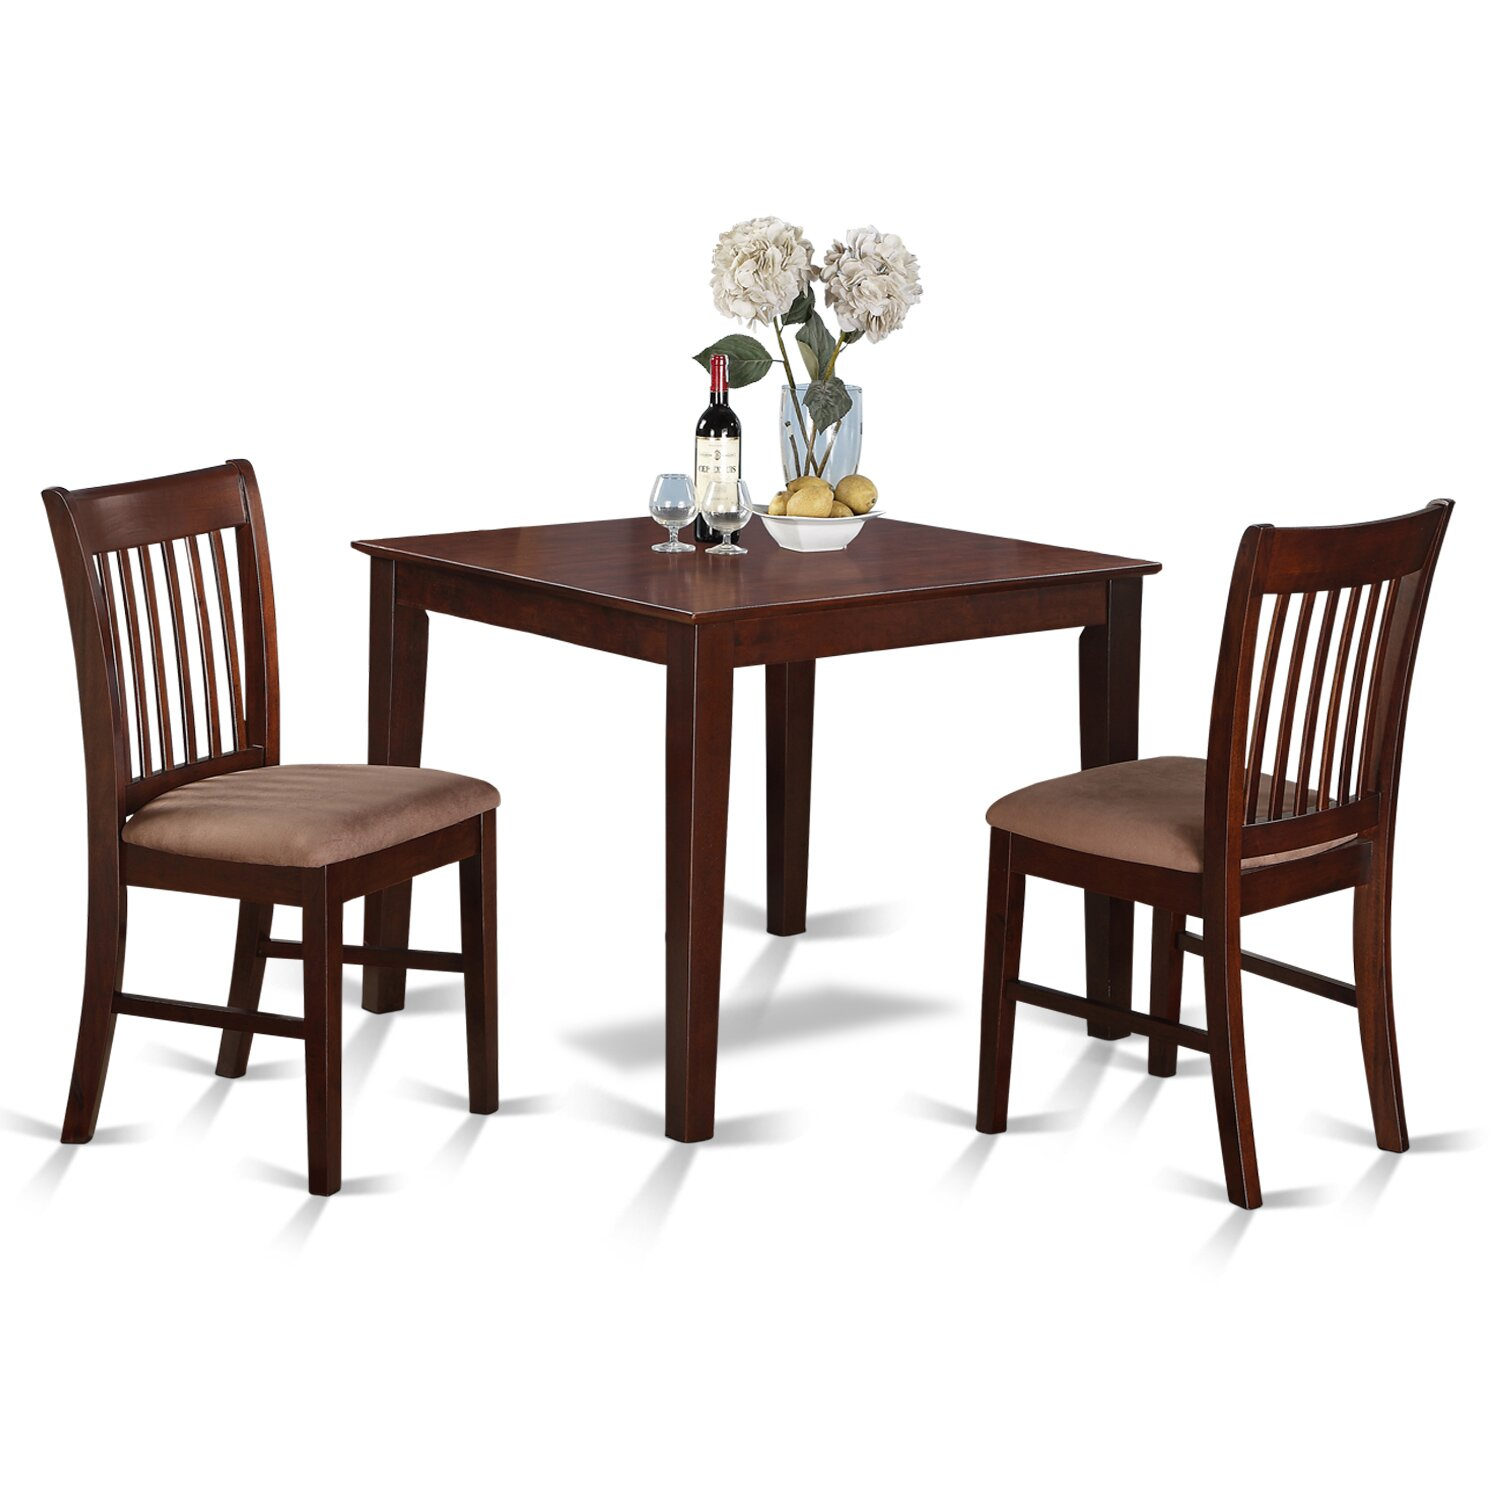 East west oxford 3 piece dining set reviews wayfair for Small table and stool set